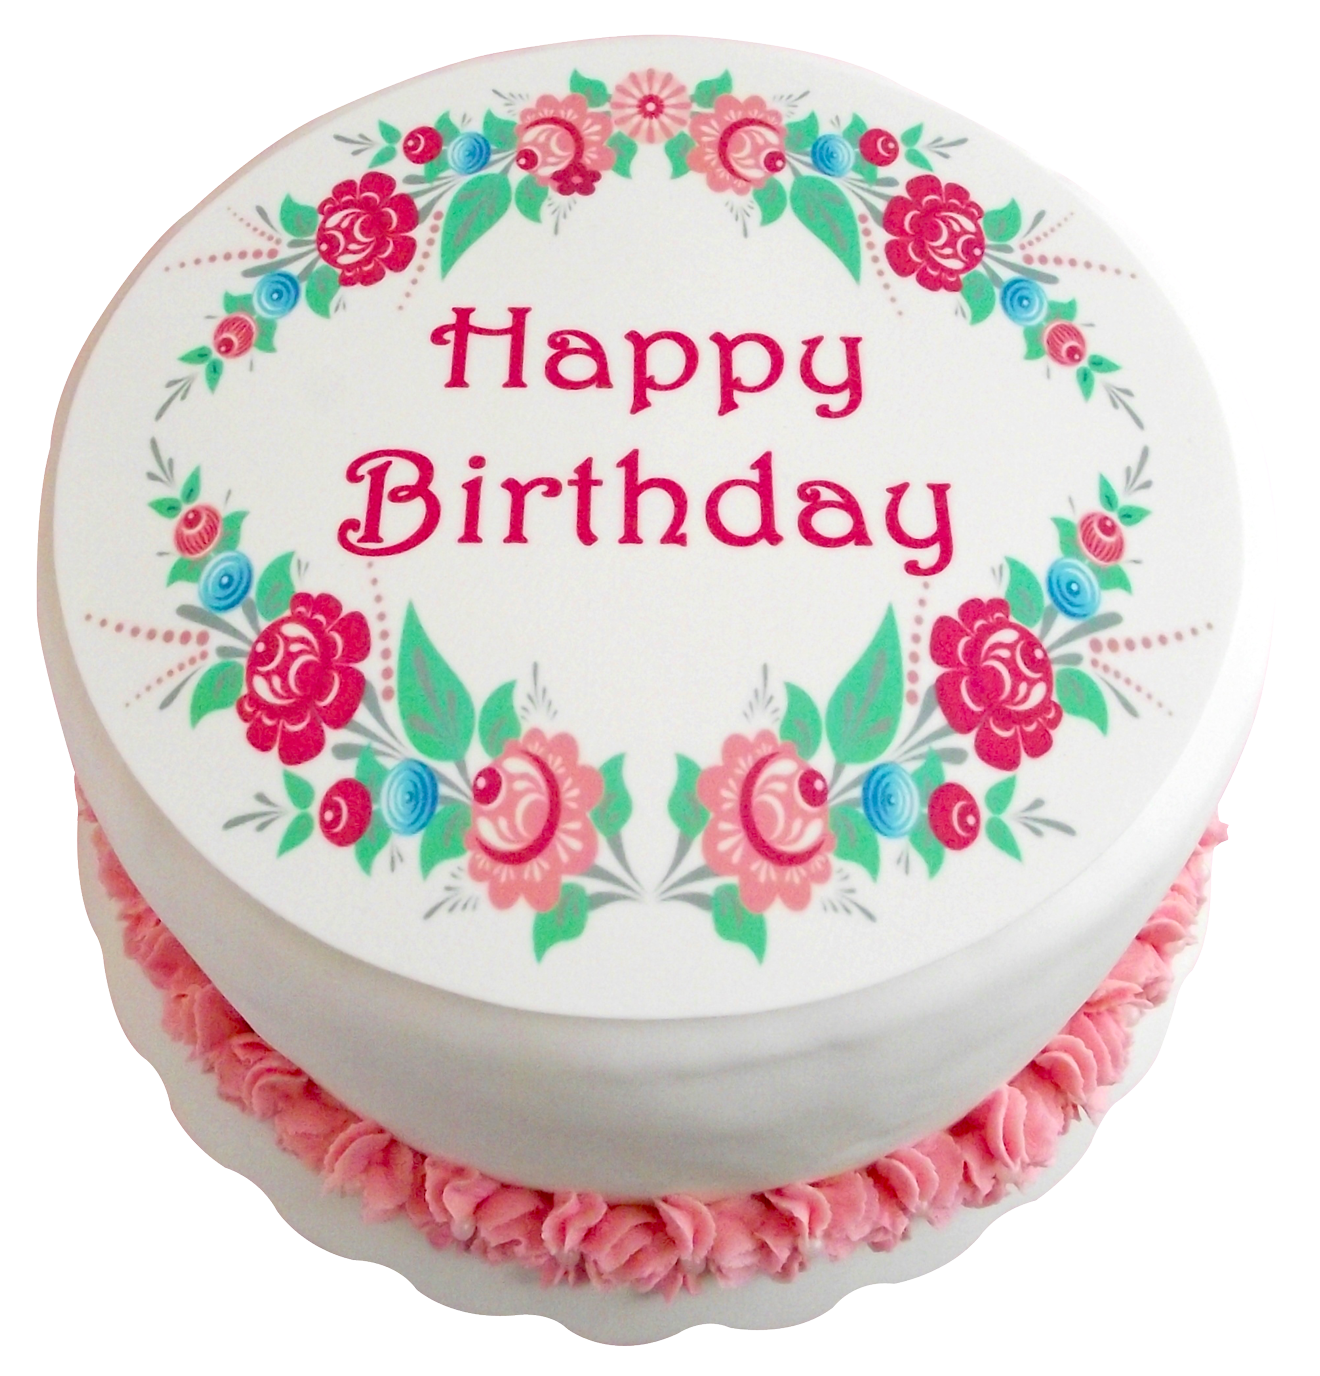 Birthday Cake PNG-PlusPNG.com-1320 - Birthday Cake PNG